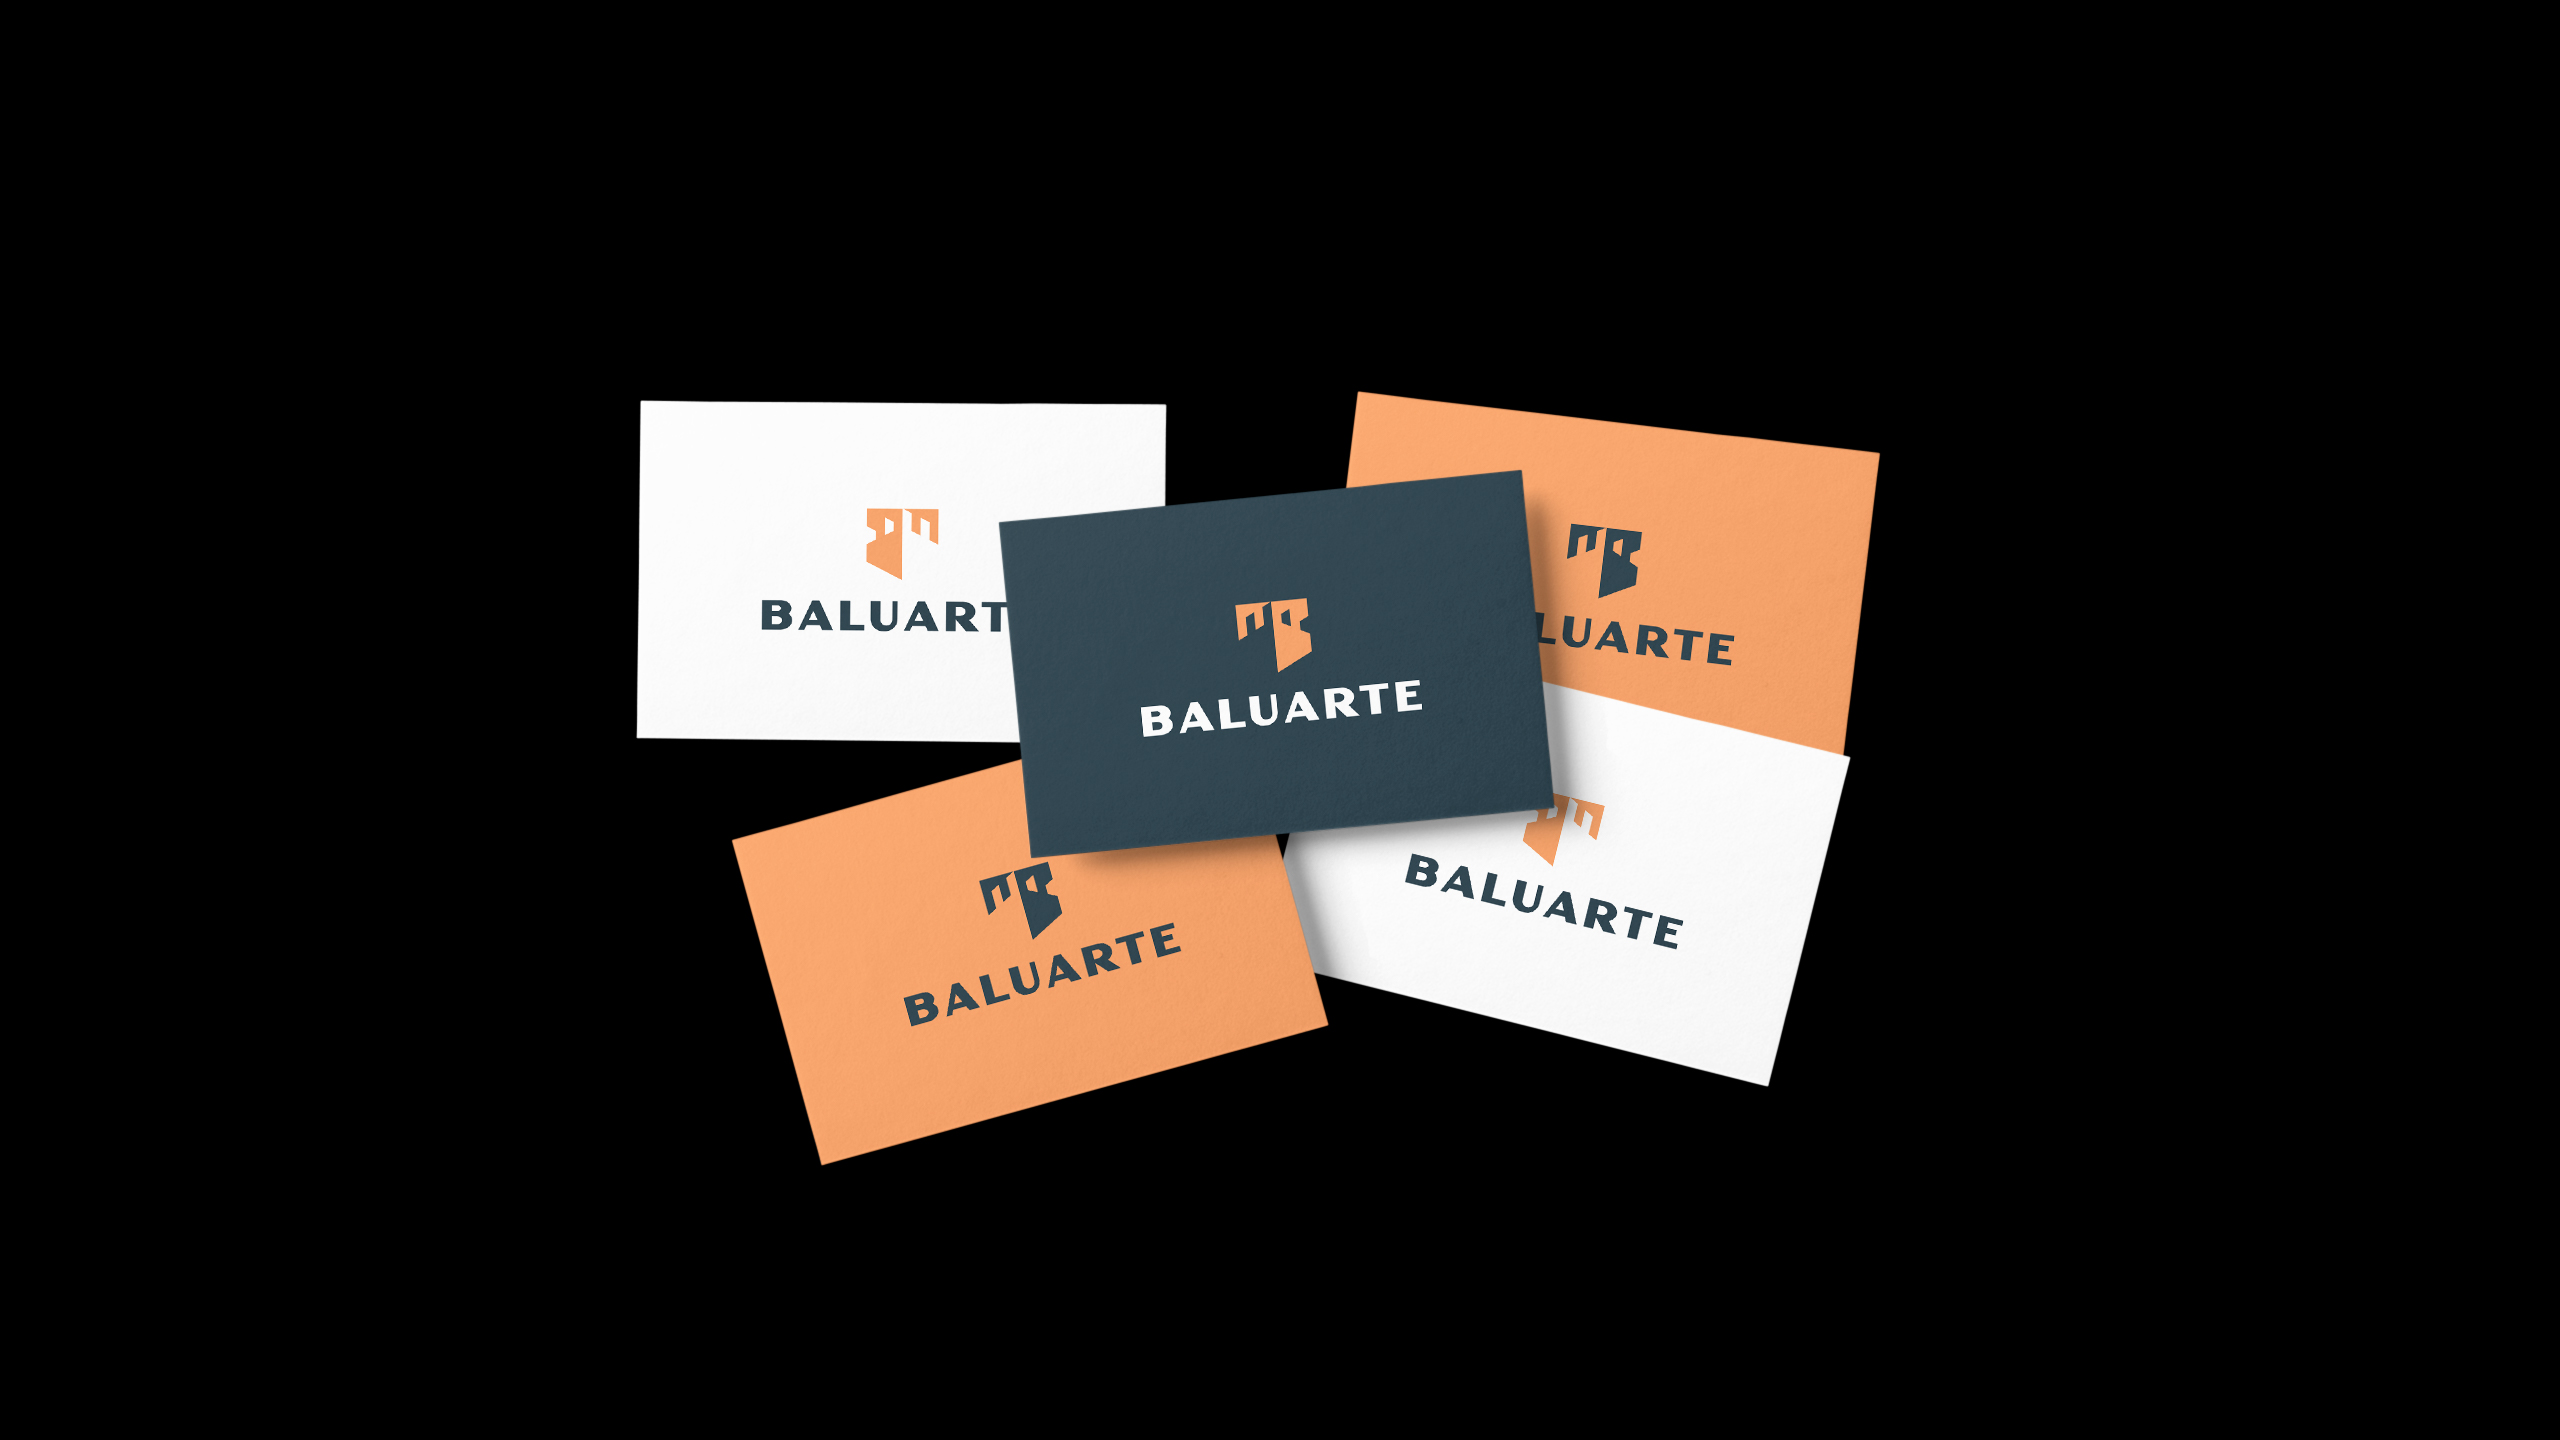 Baluarte a Business Consulting Company Branding by Berriel Brand